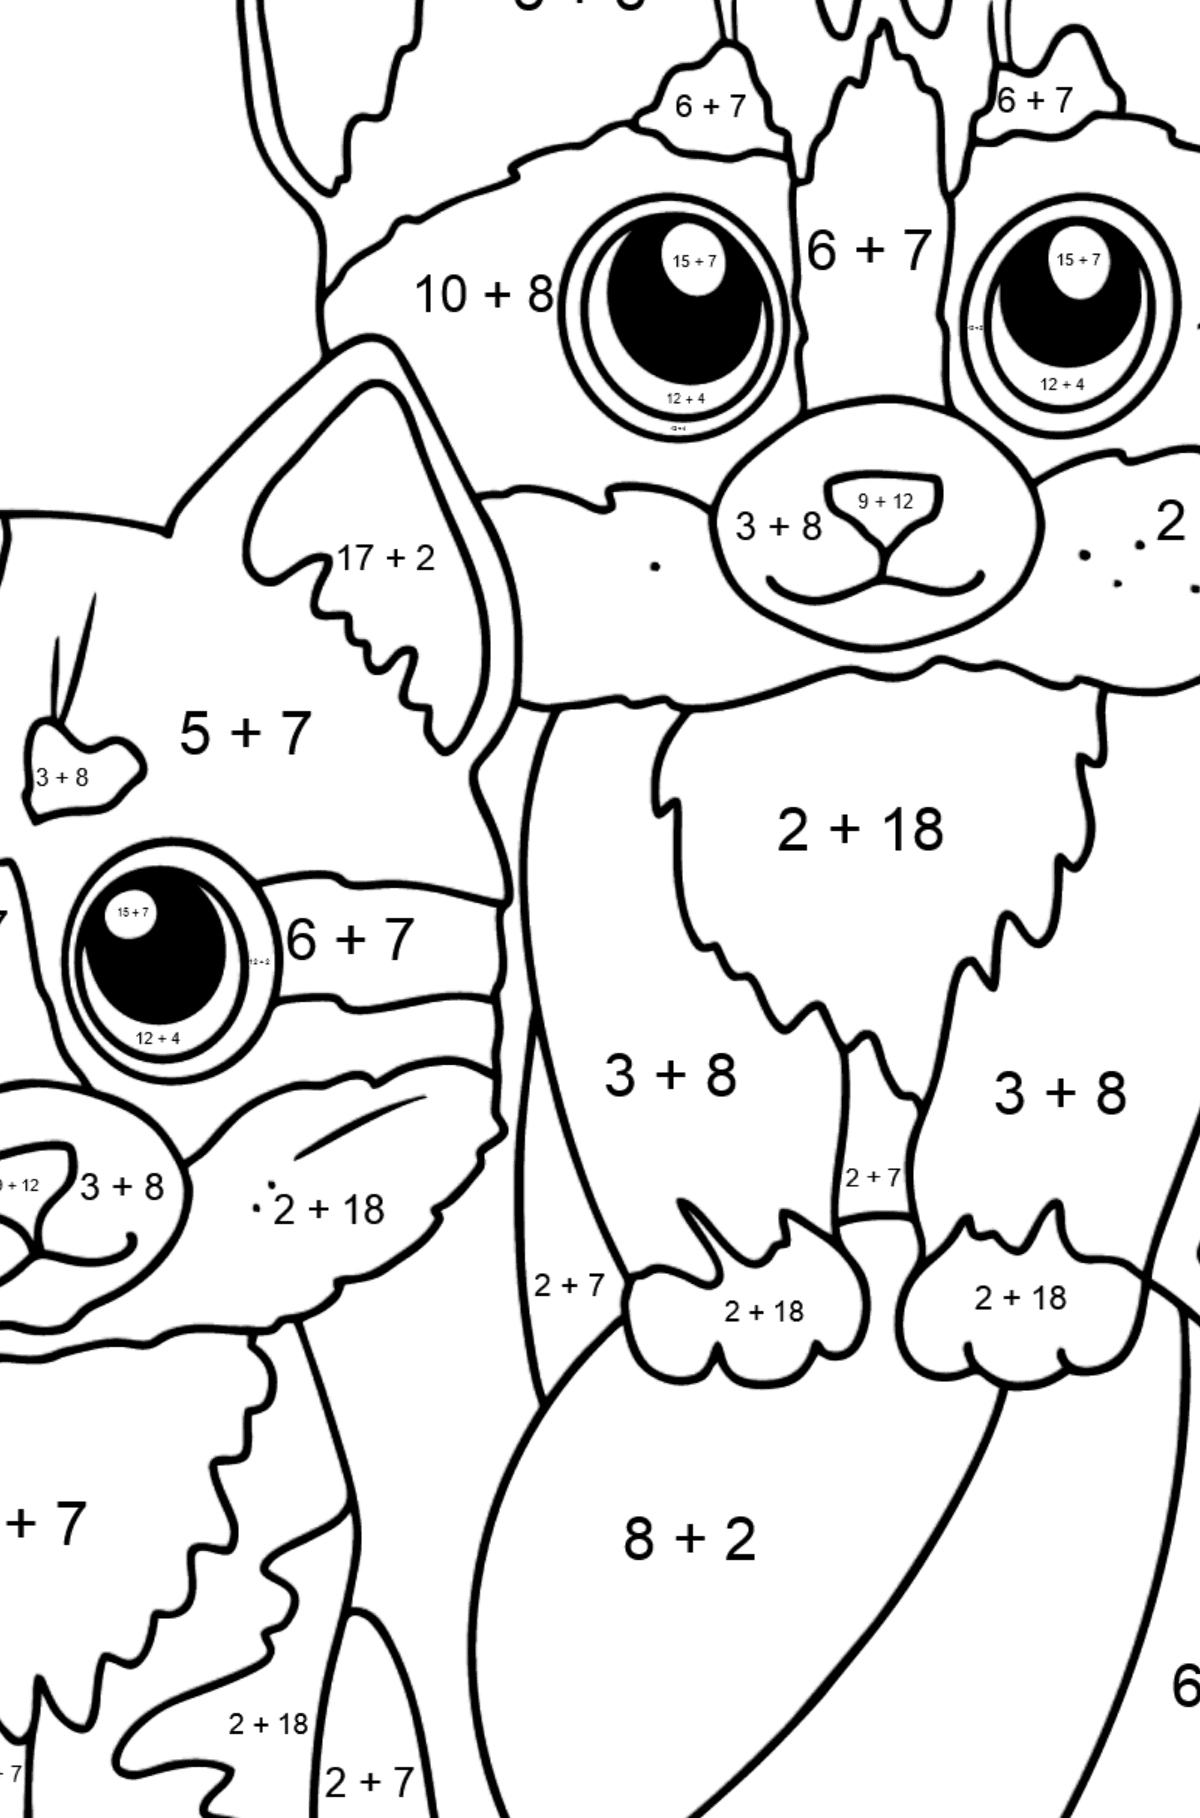 Coloring Page - Two Kittens with a Ball - Math Coloring - Addition for Kids